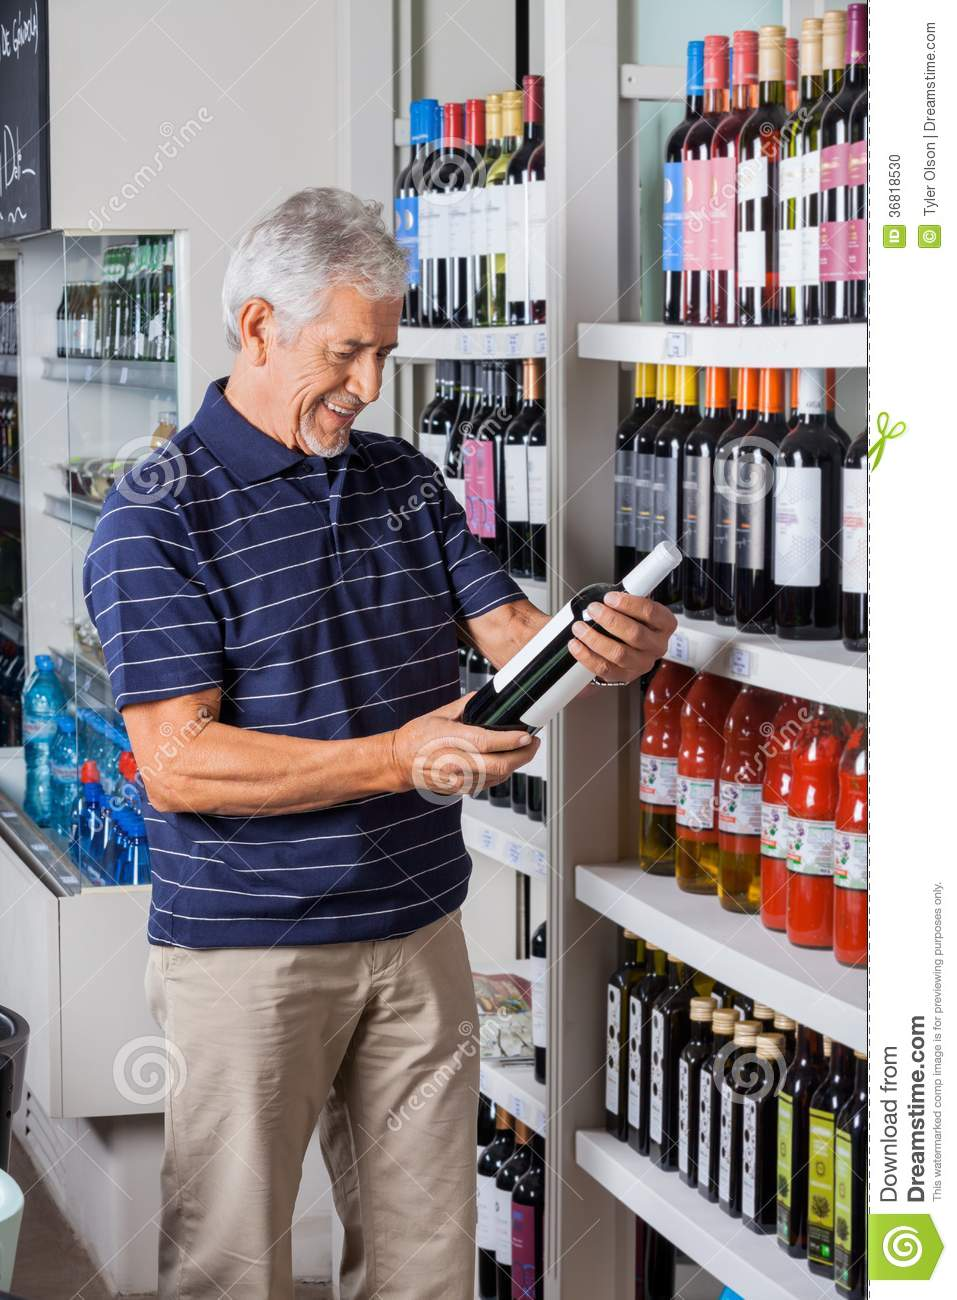 Buying A Full Face Snorkel Mask Reviews Of Full Face: Man Buying Alcohol At Supermarket Stock Photo